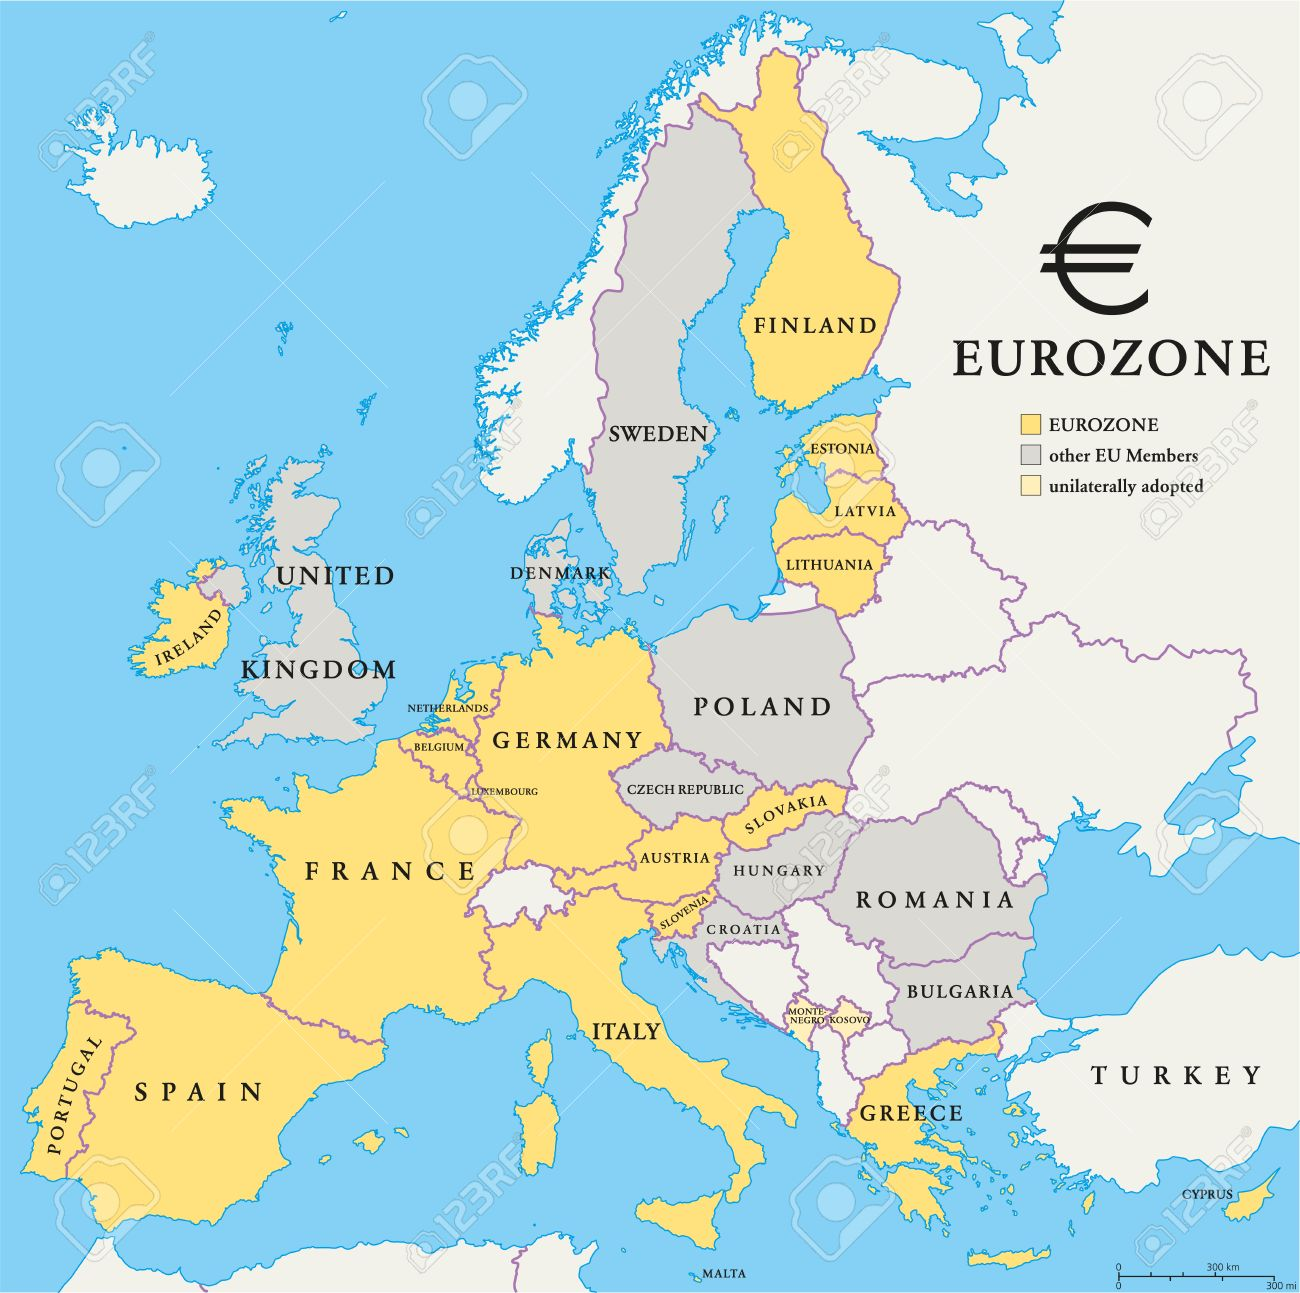 Eurozone Countries Map With National Borders Eurozone Countries - Belgium eurozone map